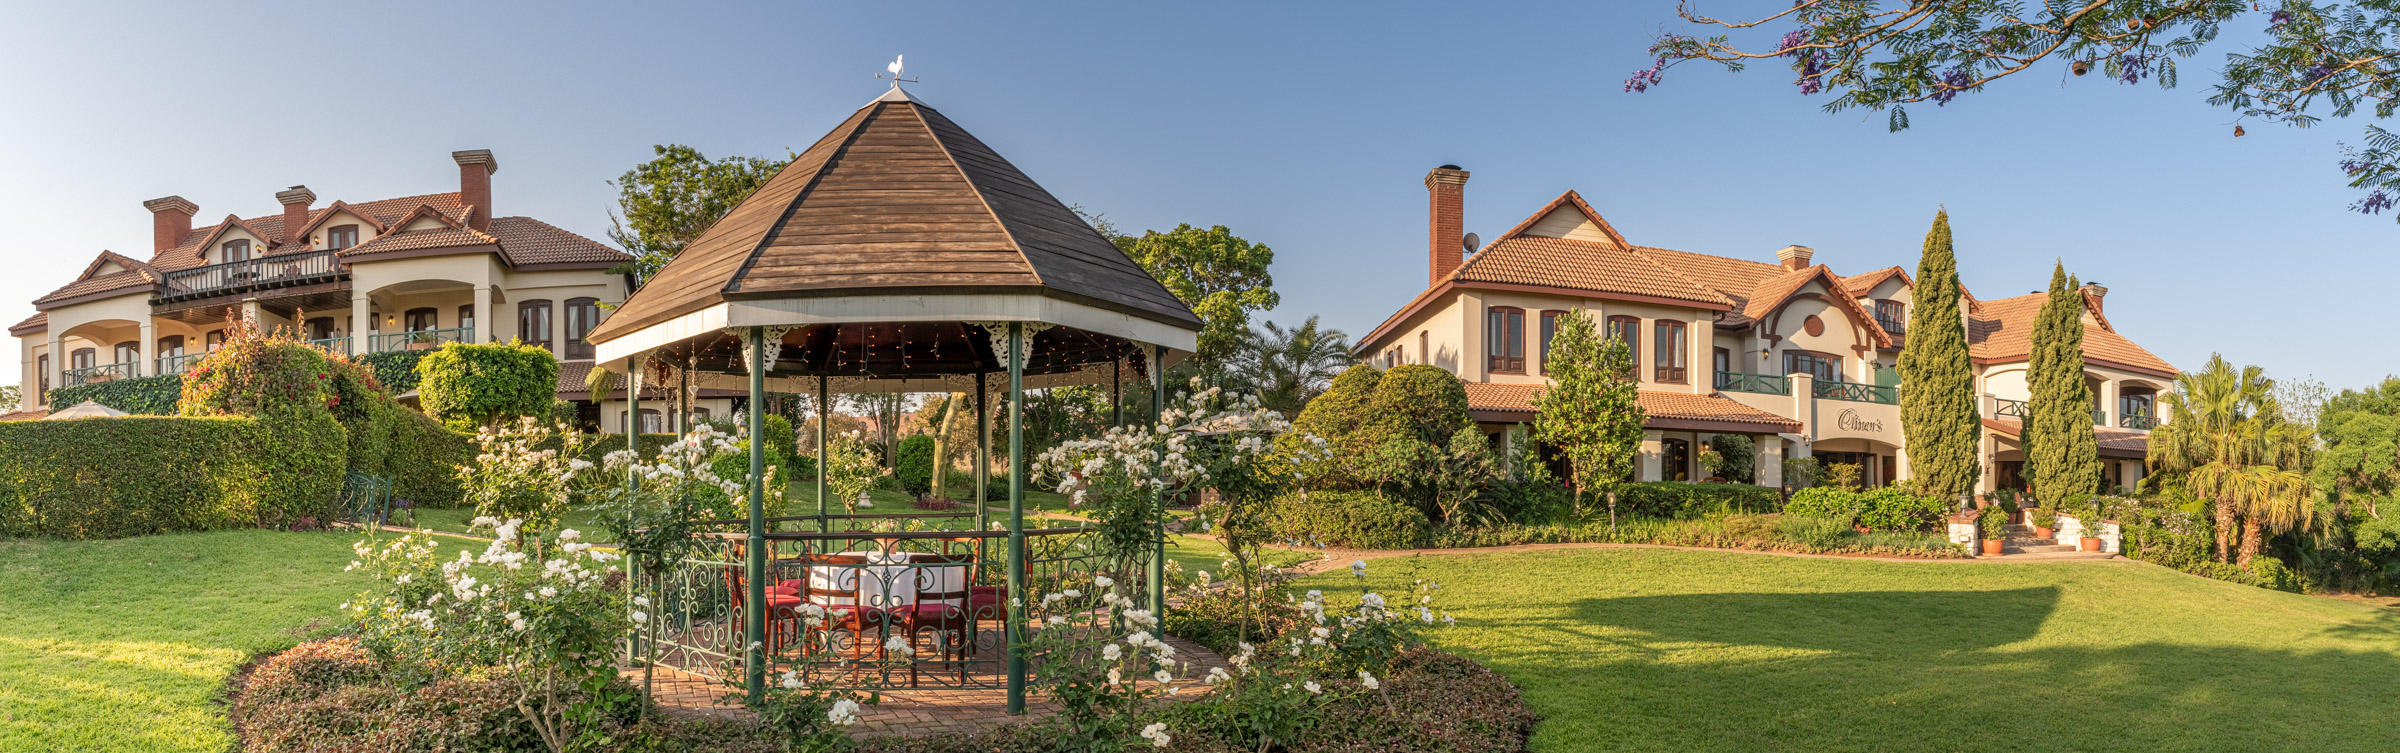 olivers-garden-gazebo-main-adjacent-building